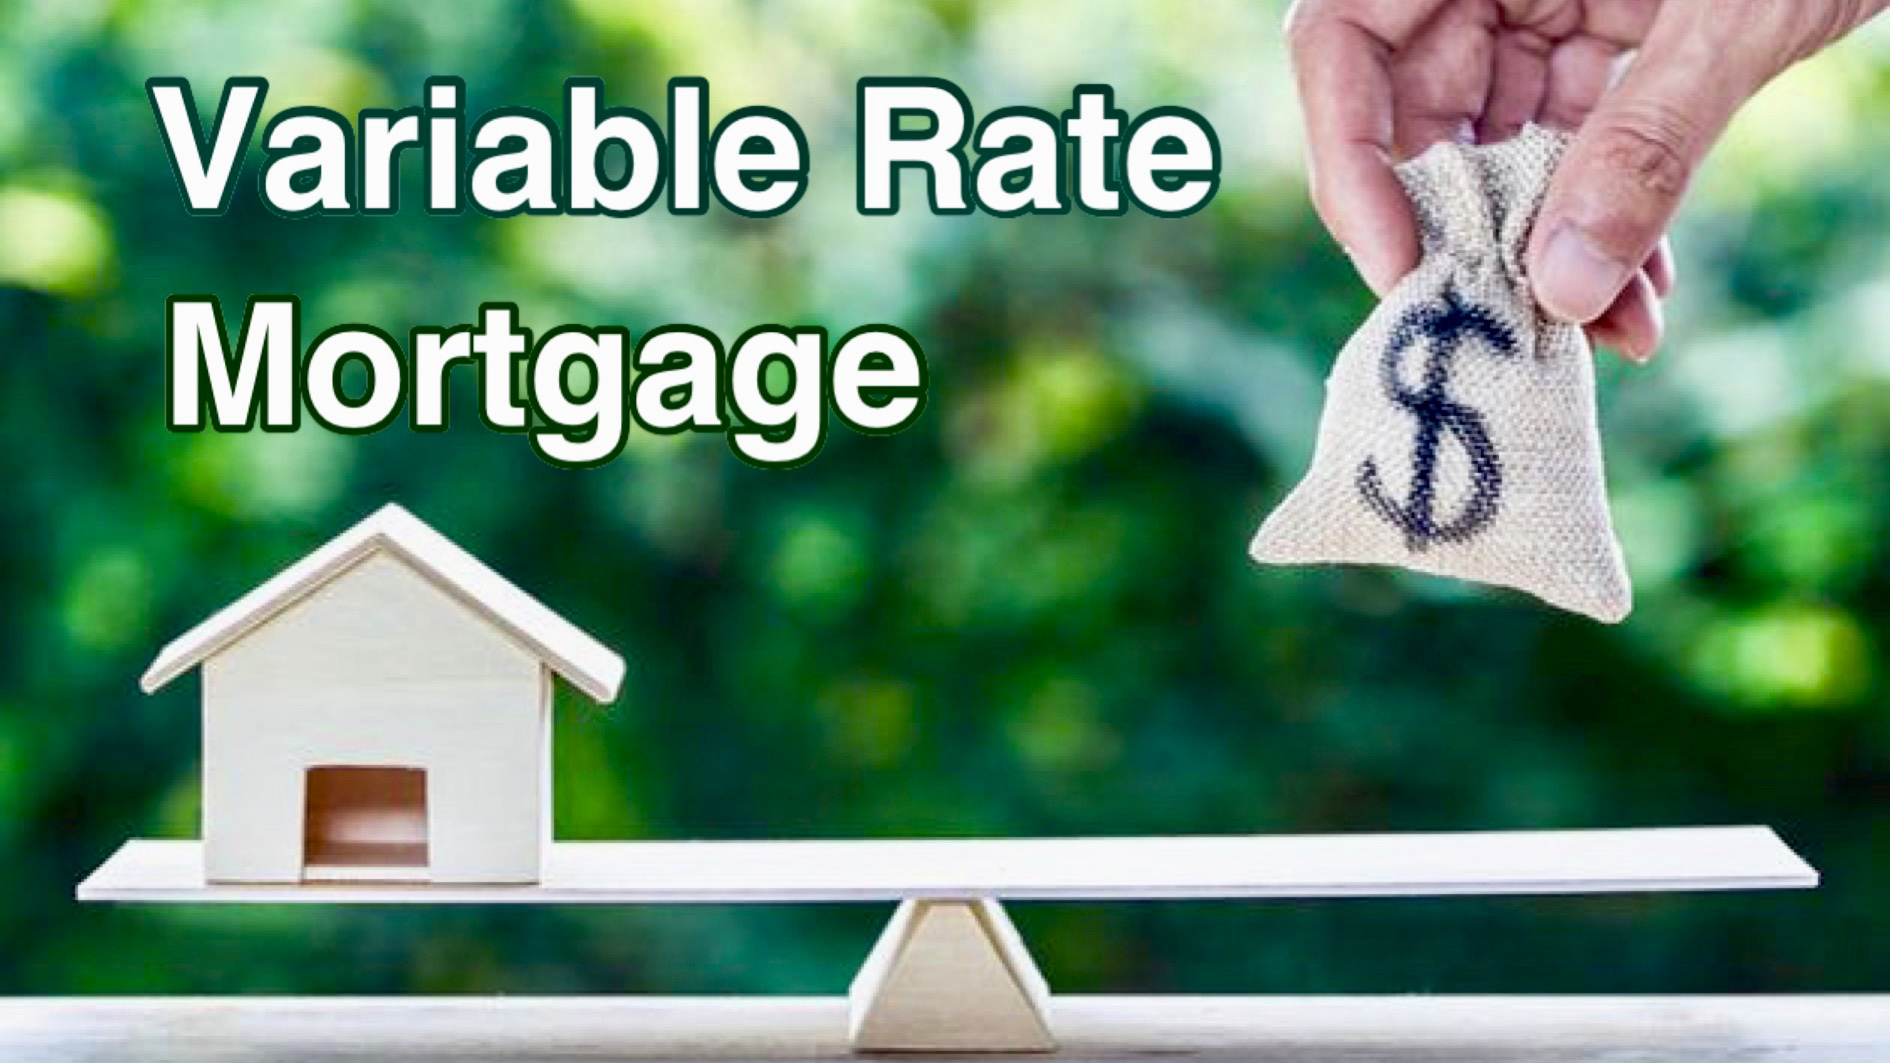 My Best Rate on Variable-Rate or Adjustable-Rate Mortgage (ARM)